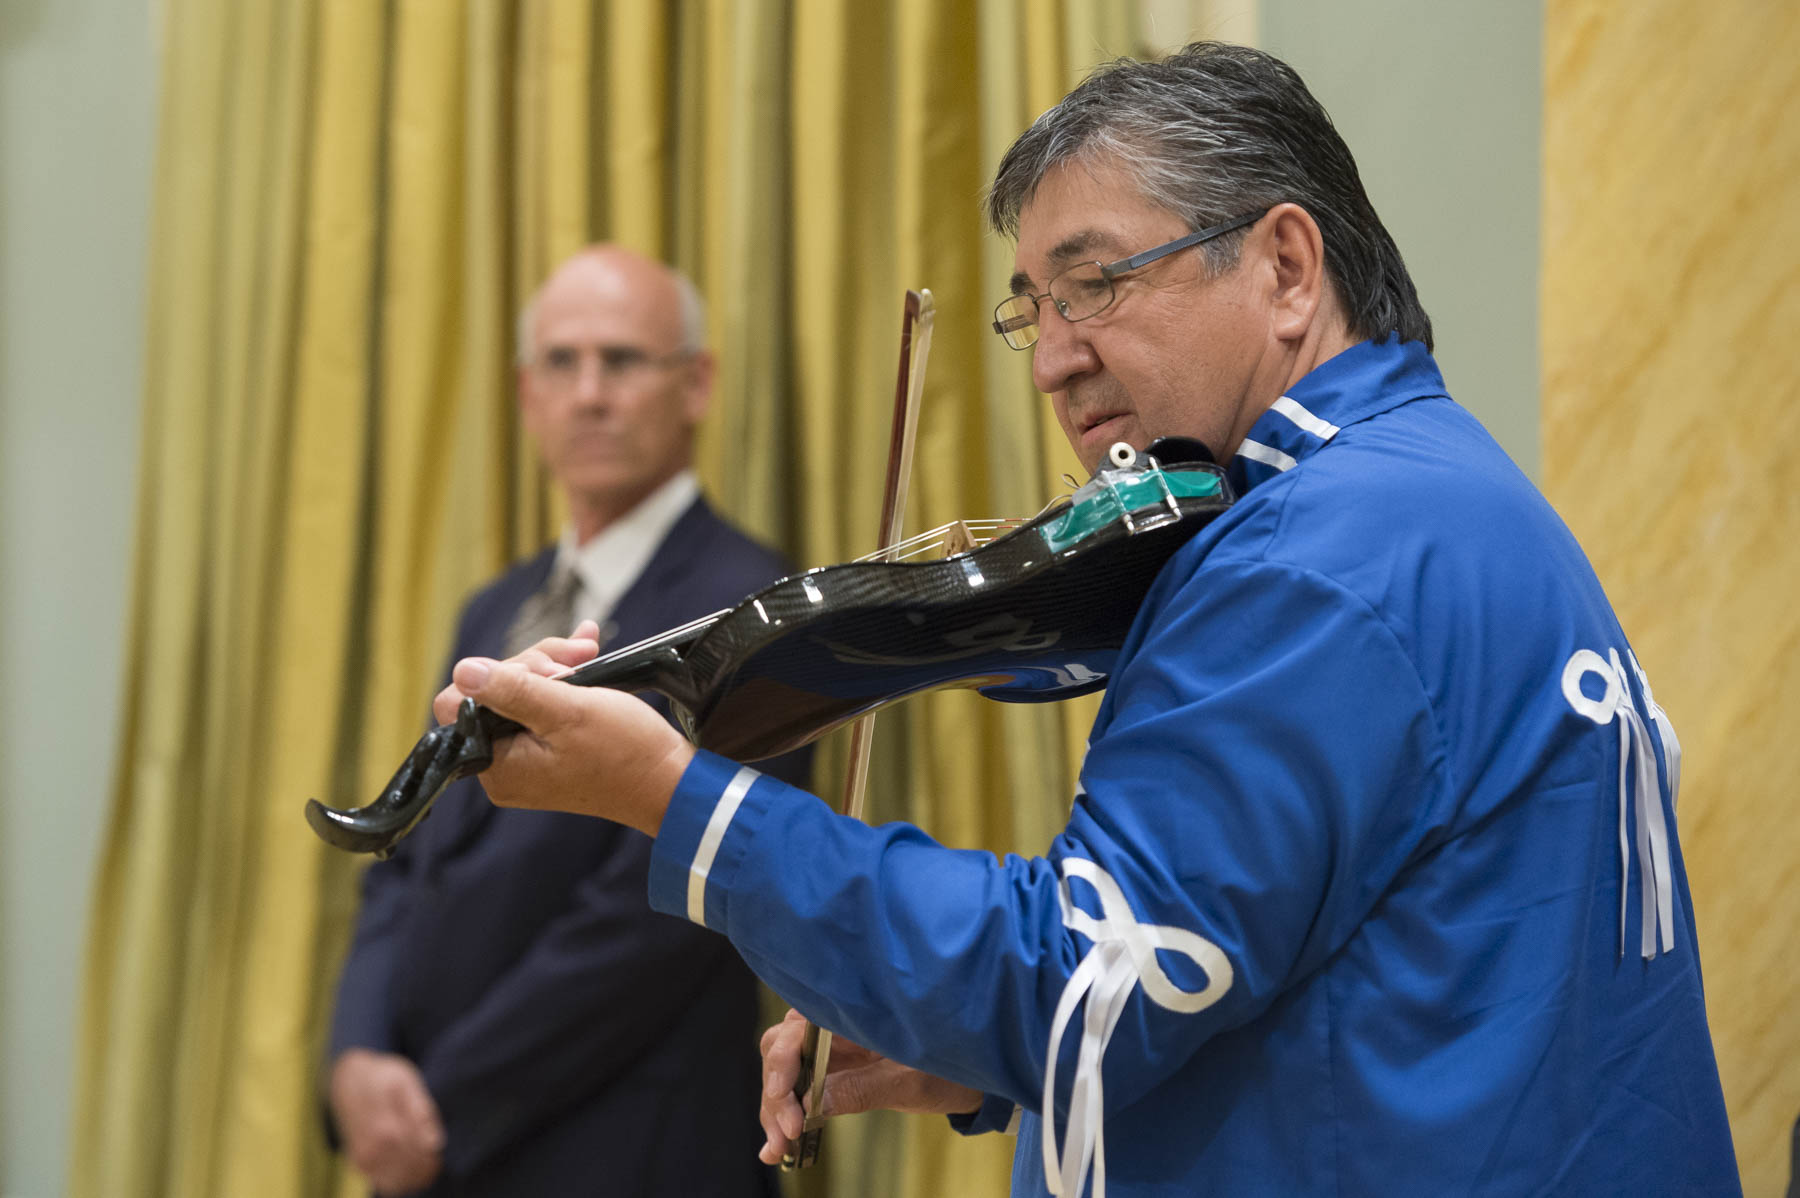 The ceremony began with Métis Elder Olivier Boulet, who played fiddle as  music as ministers designate,  the Right Honourable, Justin Trudeau, Prime Minister of Canada, and Their Excellencies  entered the Ballroom.